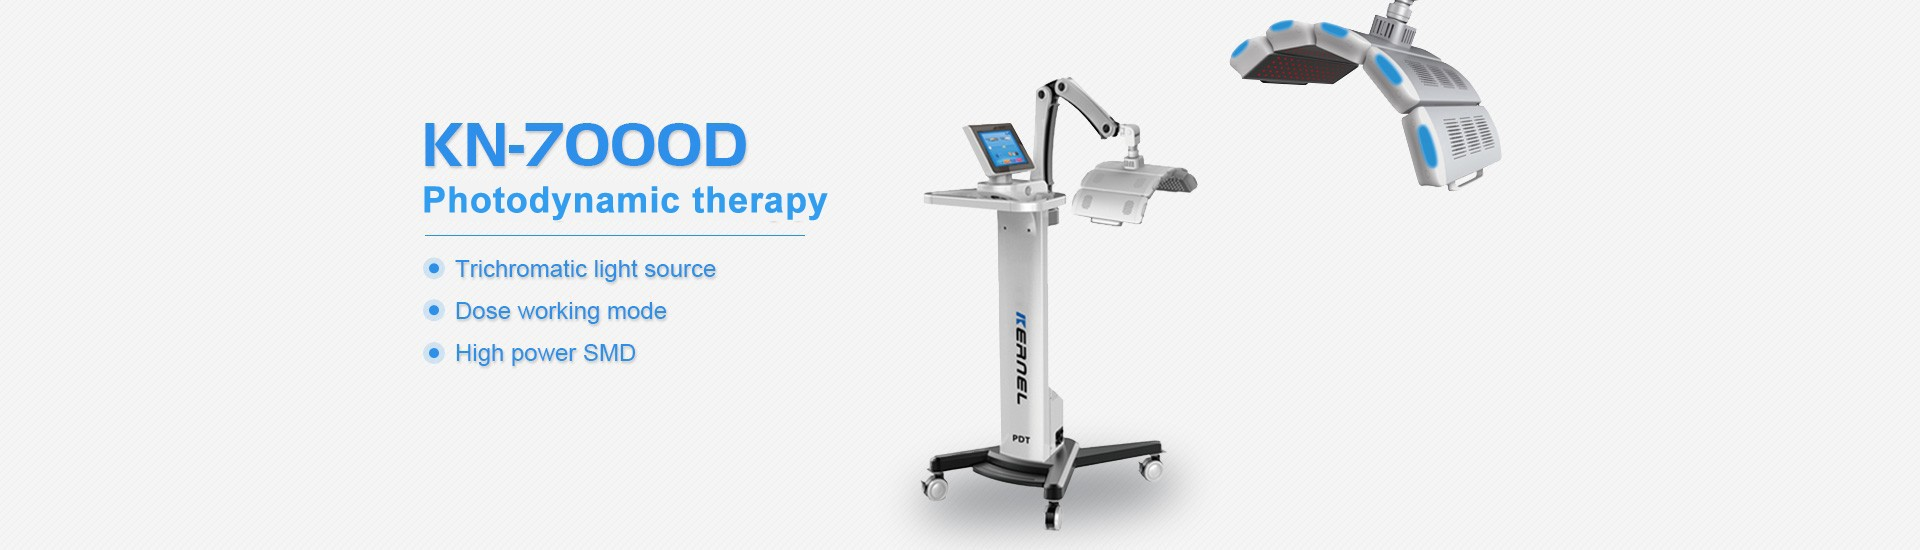 LED-lichttherapiemachine